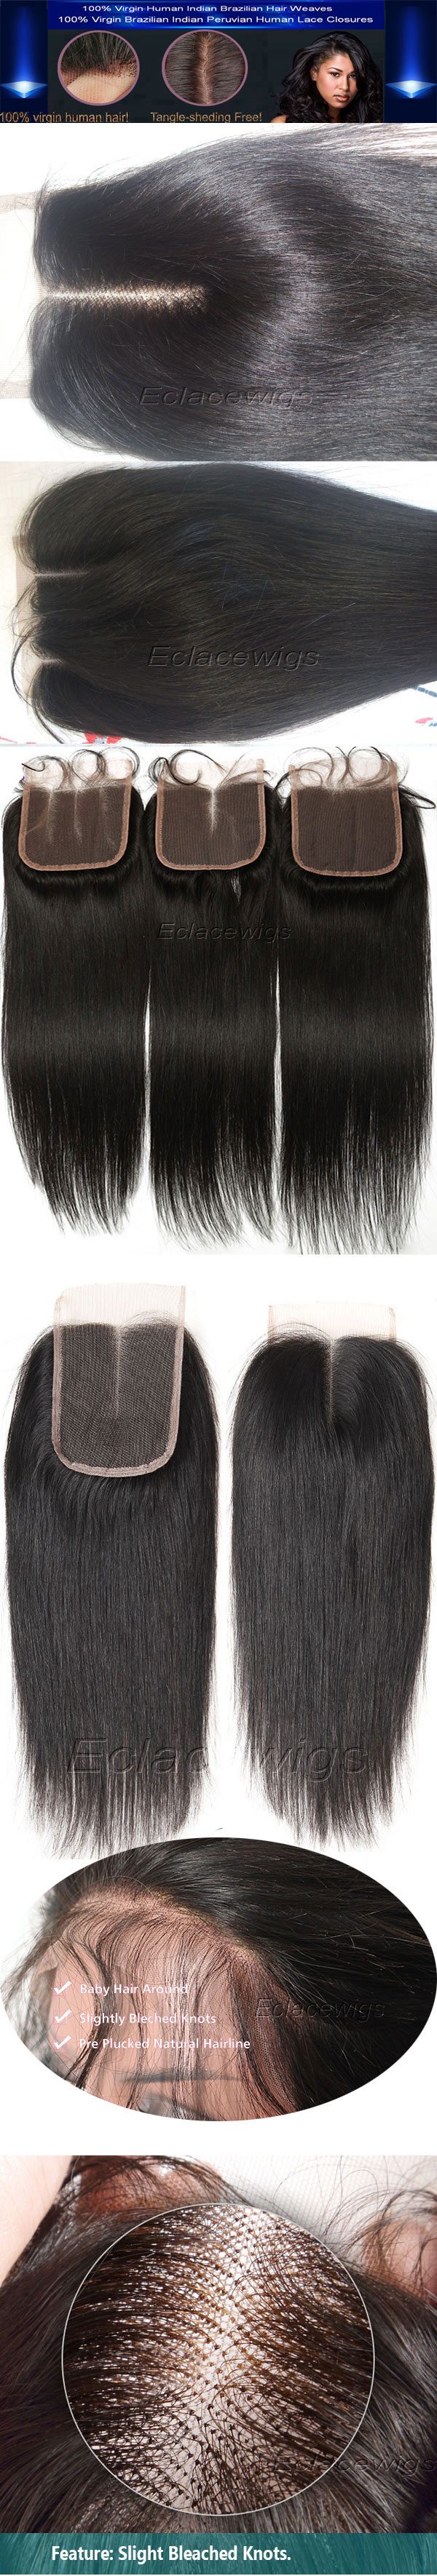 Straight lace closures